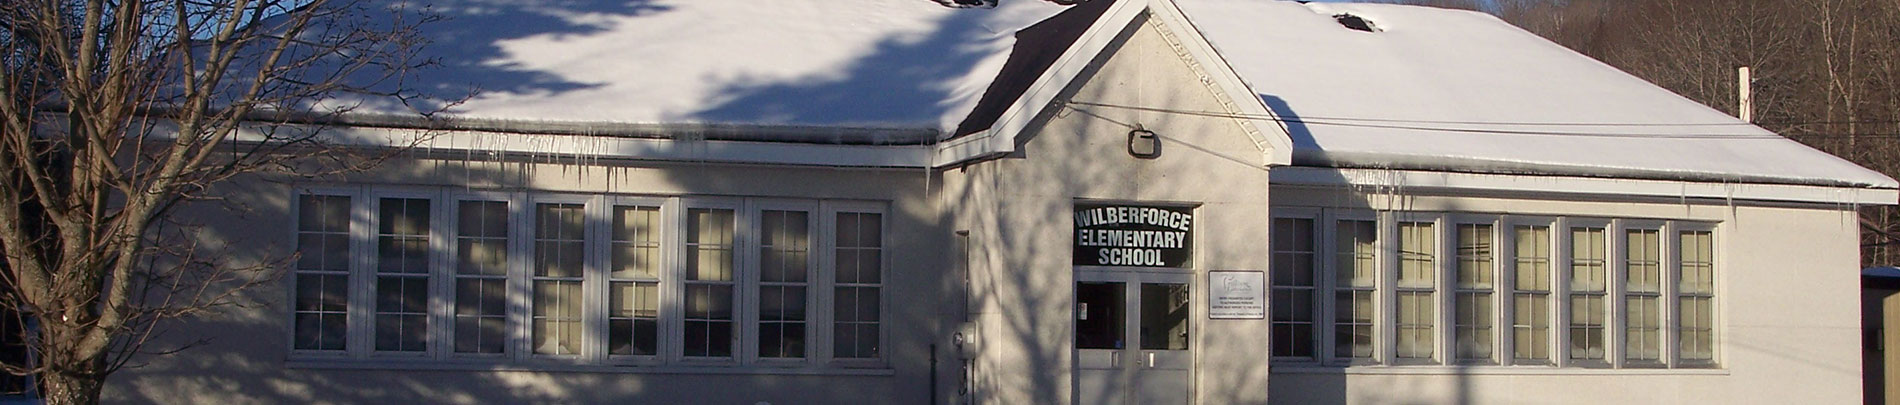 The exterior of Wilberforce Elementary School in the wintertime.